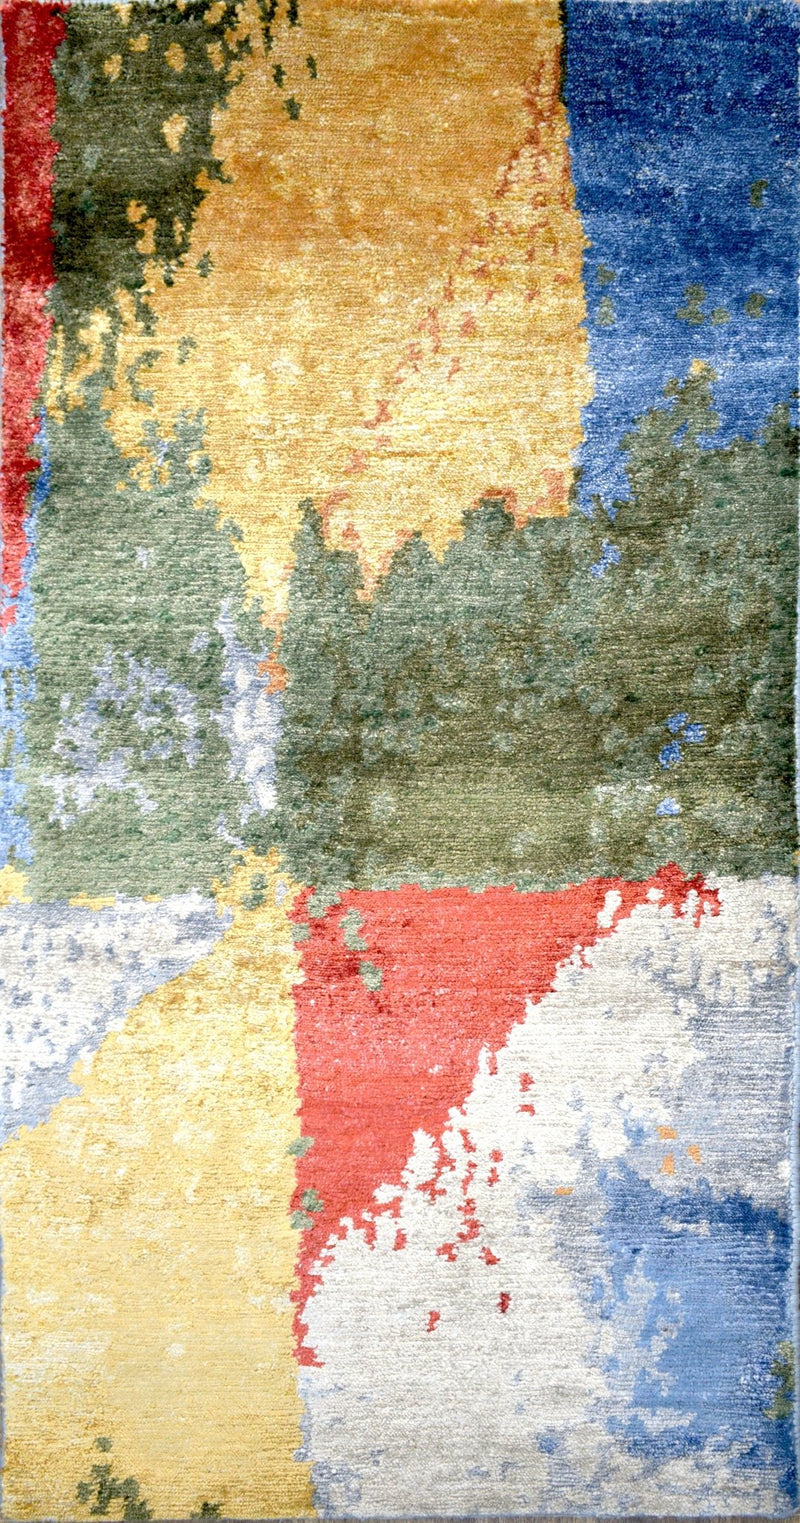 Modern Indo Tibetan Wool and Bamboo Silk 2' by 4' Rug |The Rug Decor |TRD152224 - The Rug Decor